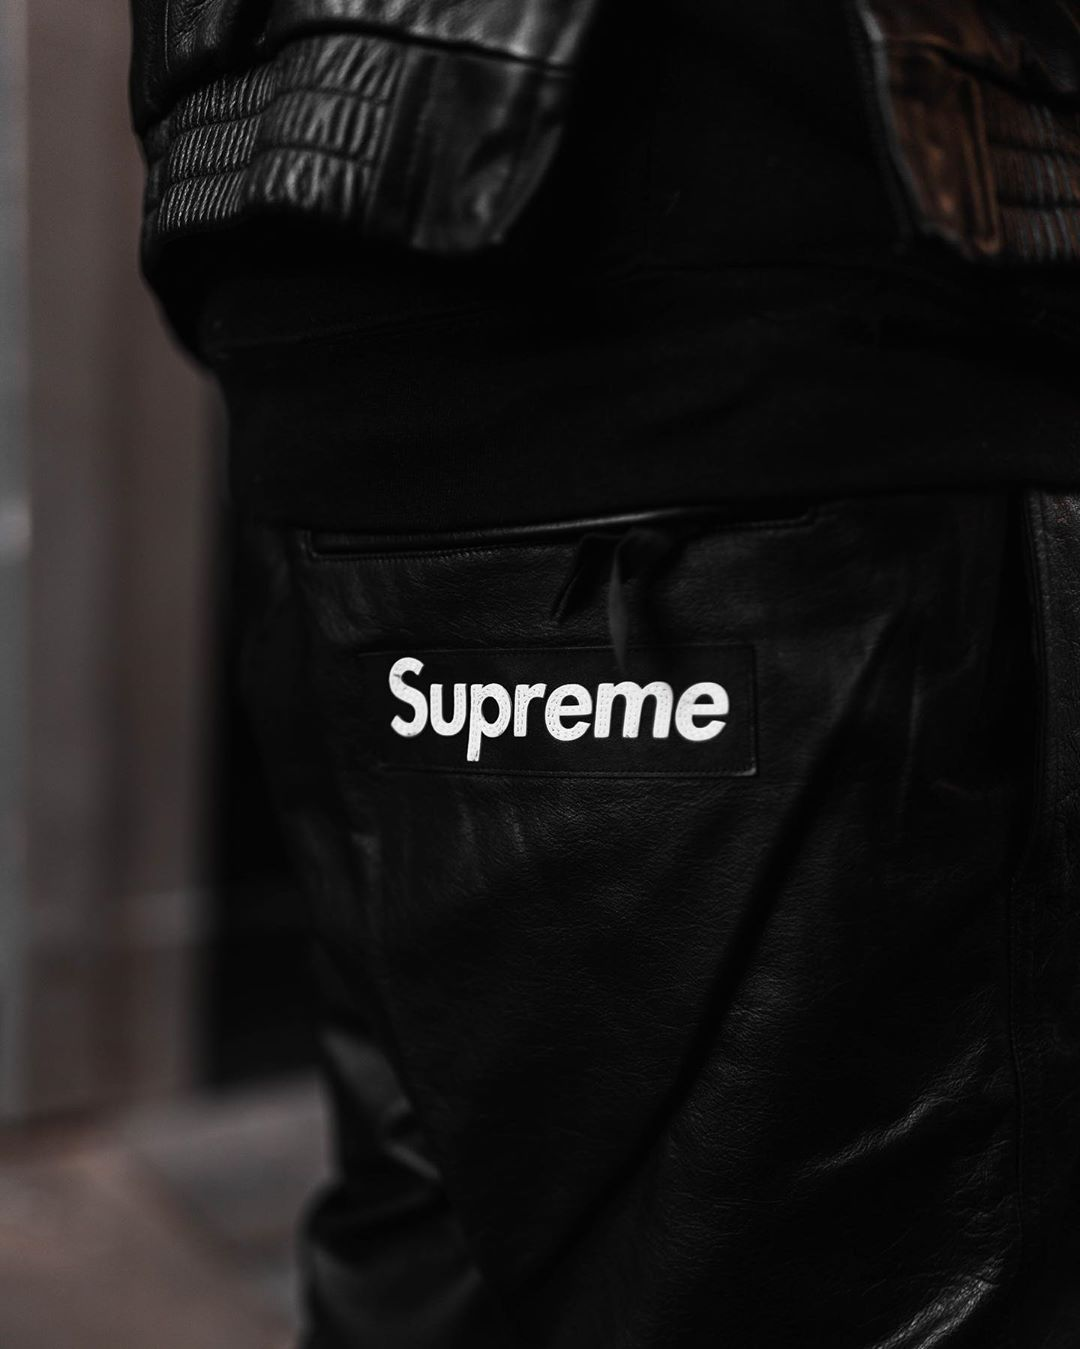 supreme-online-store-19aw-19fw-20191130-week14-release-items-snap